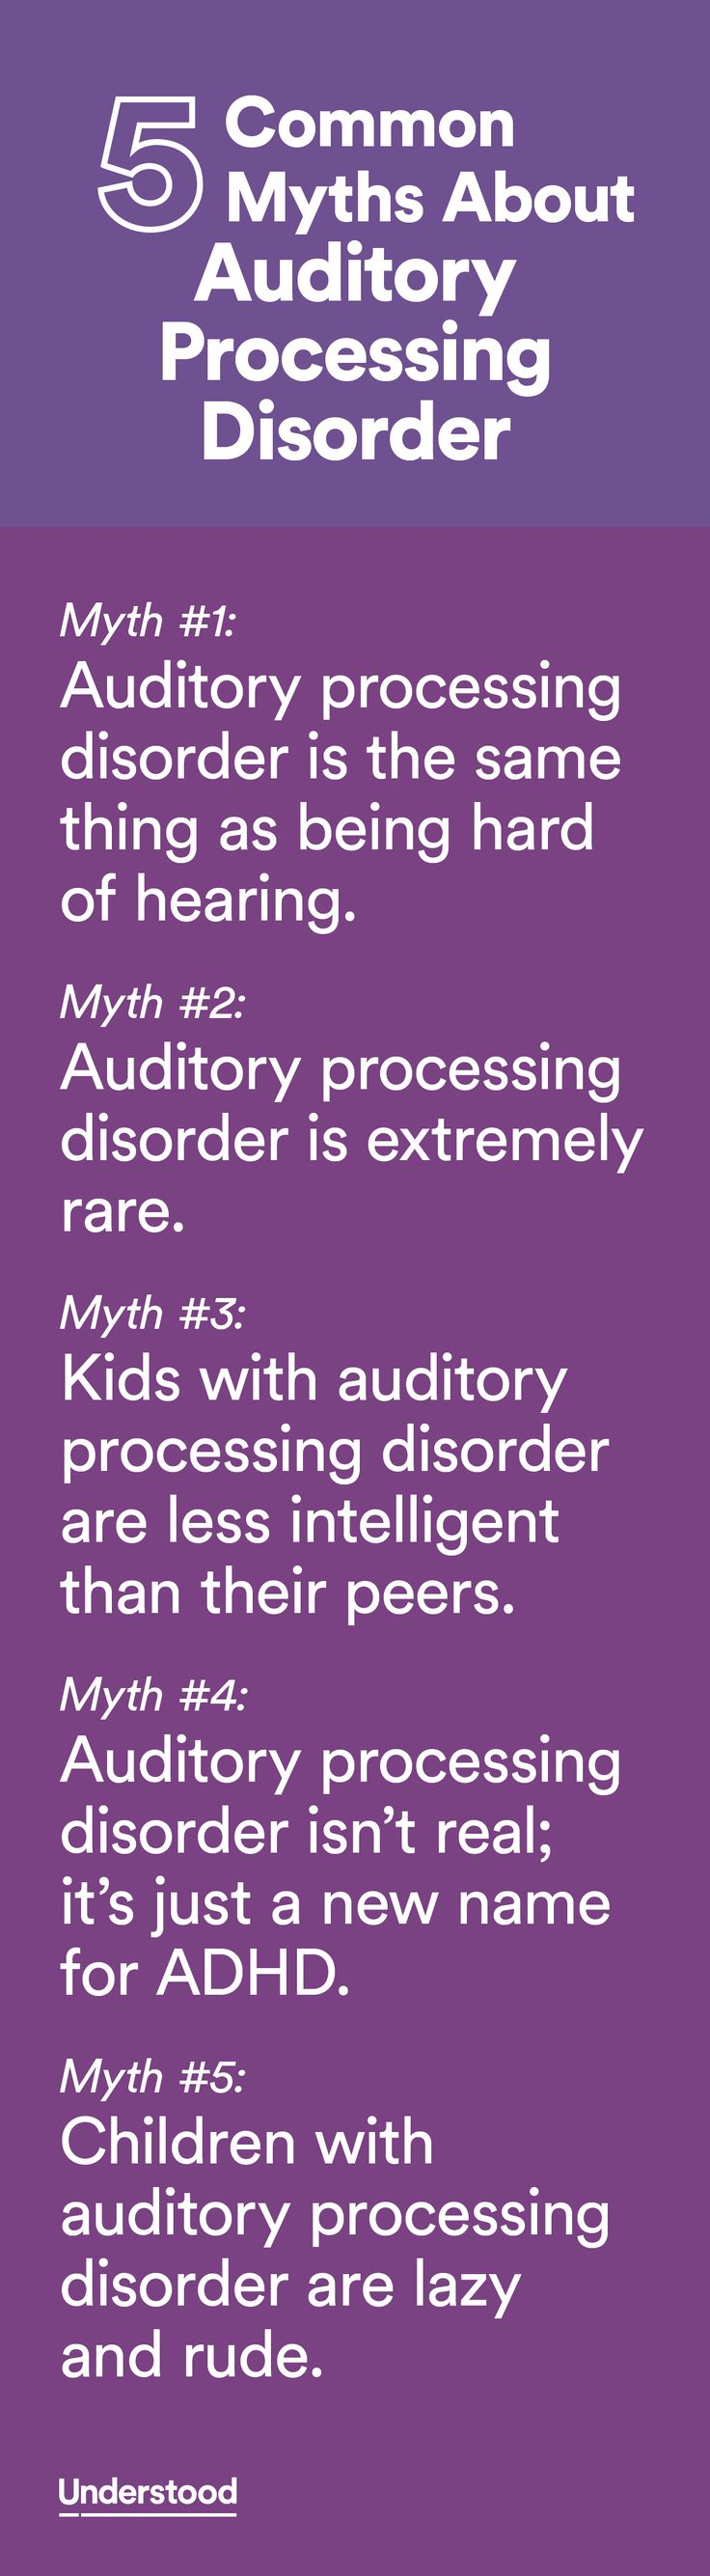 In recent years, researchers have made huge strides toward understanding auditory processing disorder (APD). More and more children are being diagnosed with APD and successfully treated. Yet many misconceptions about APD persist. Here are five common myths—and the truth about each.